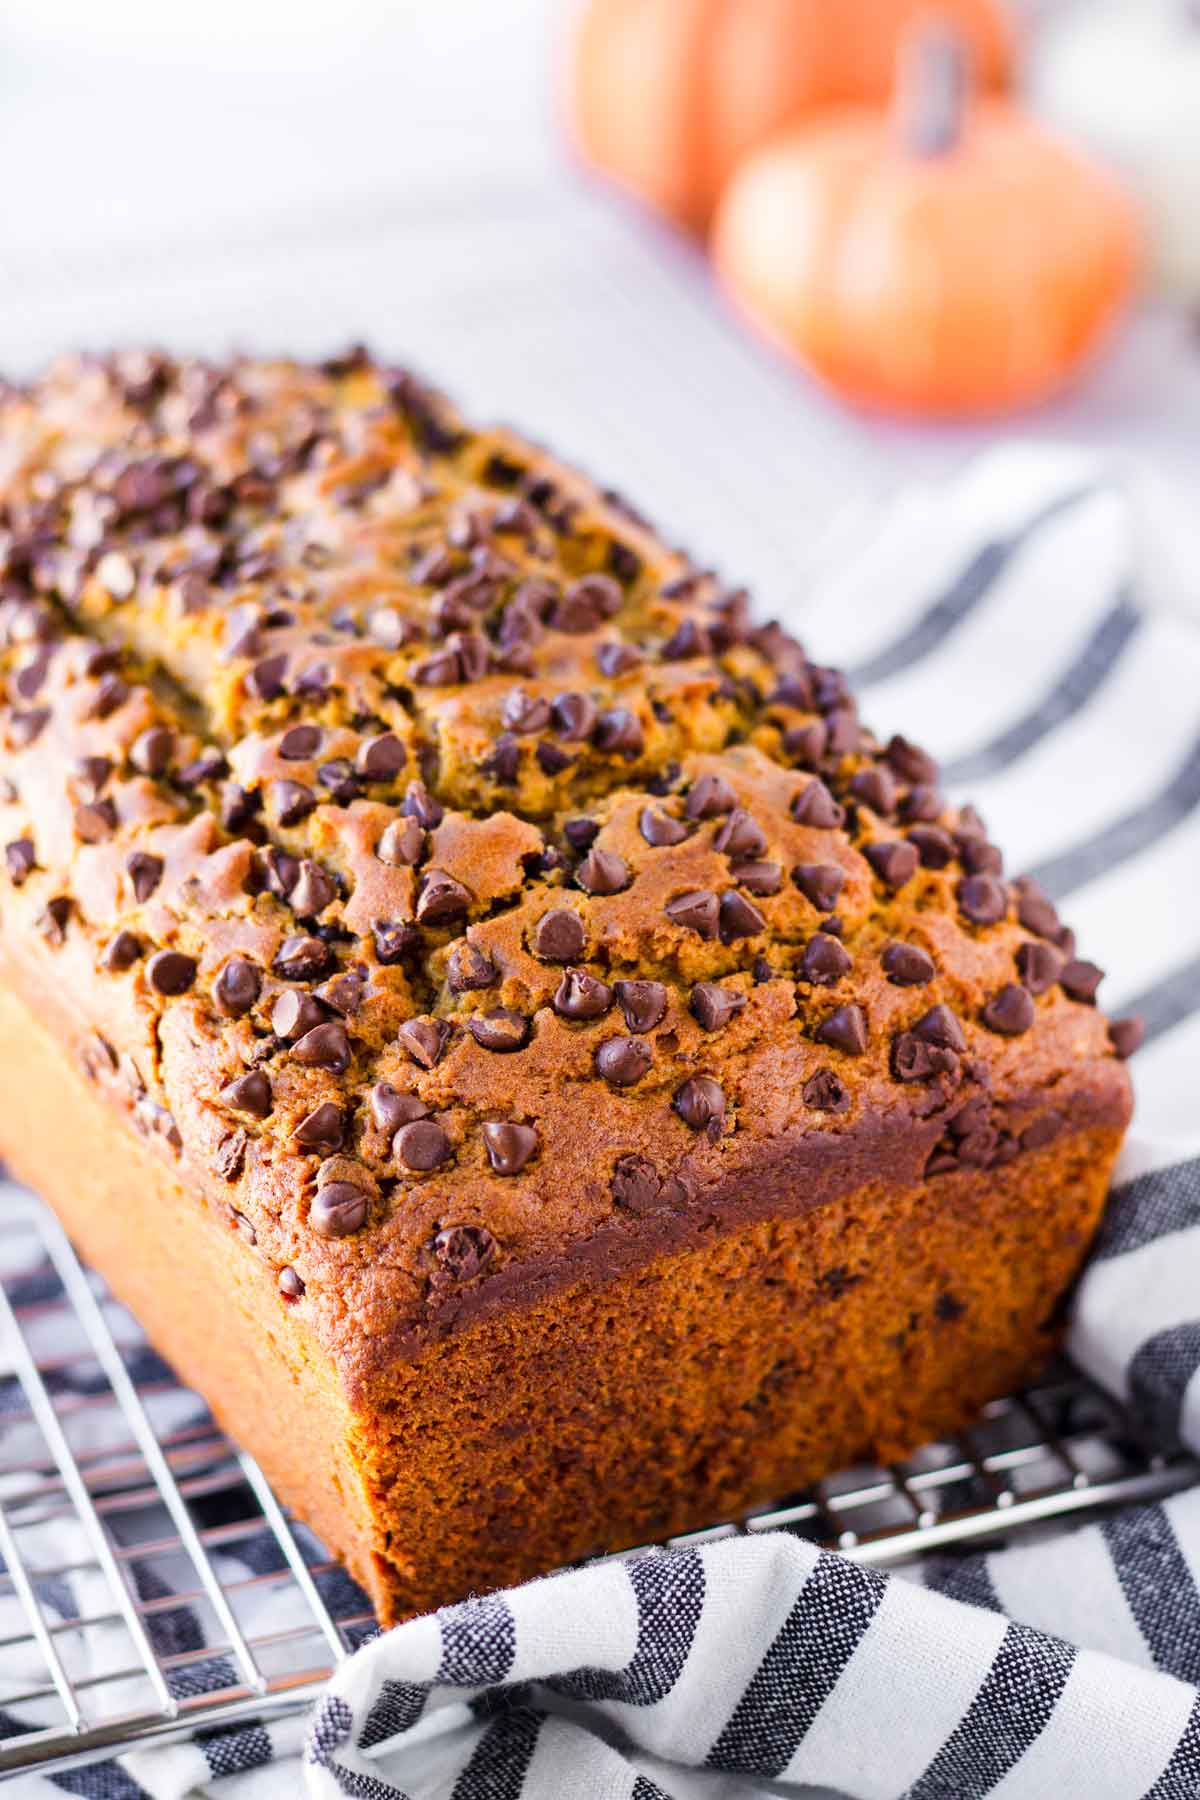 a 9 by 5 inch loaf of quick bread topped with chocolate chips